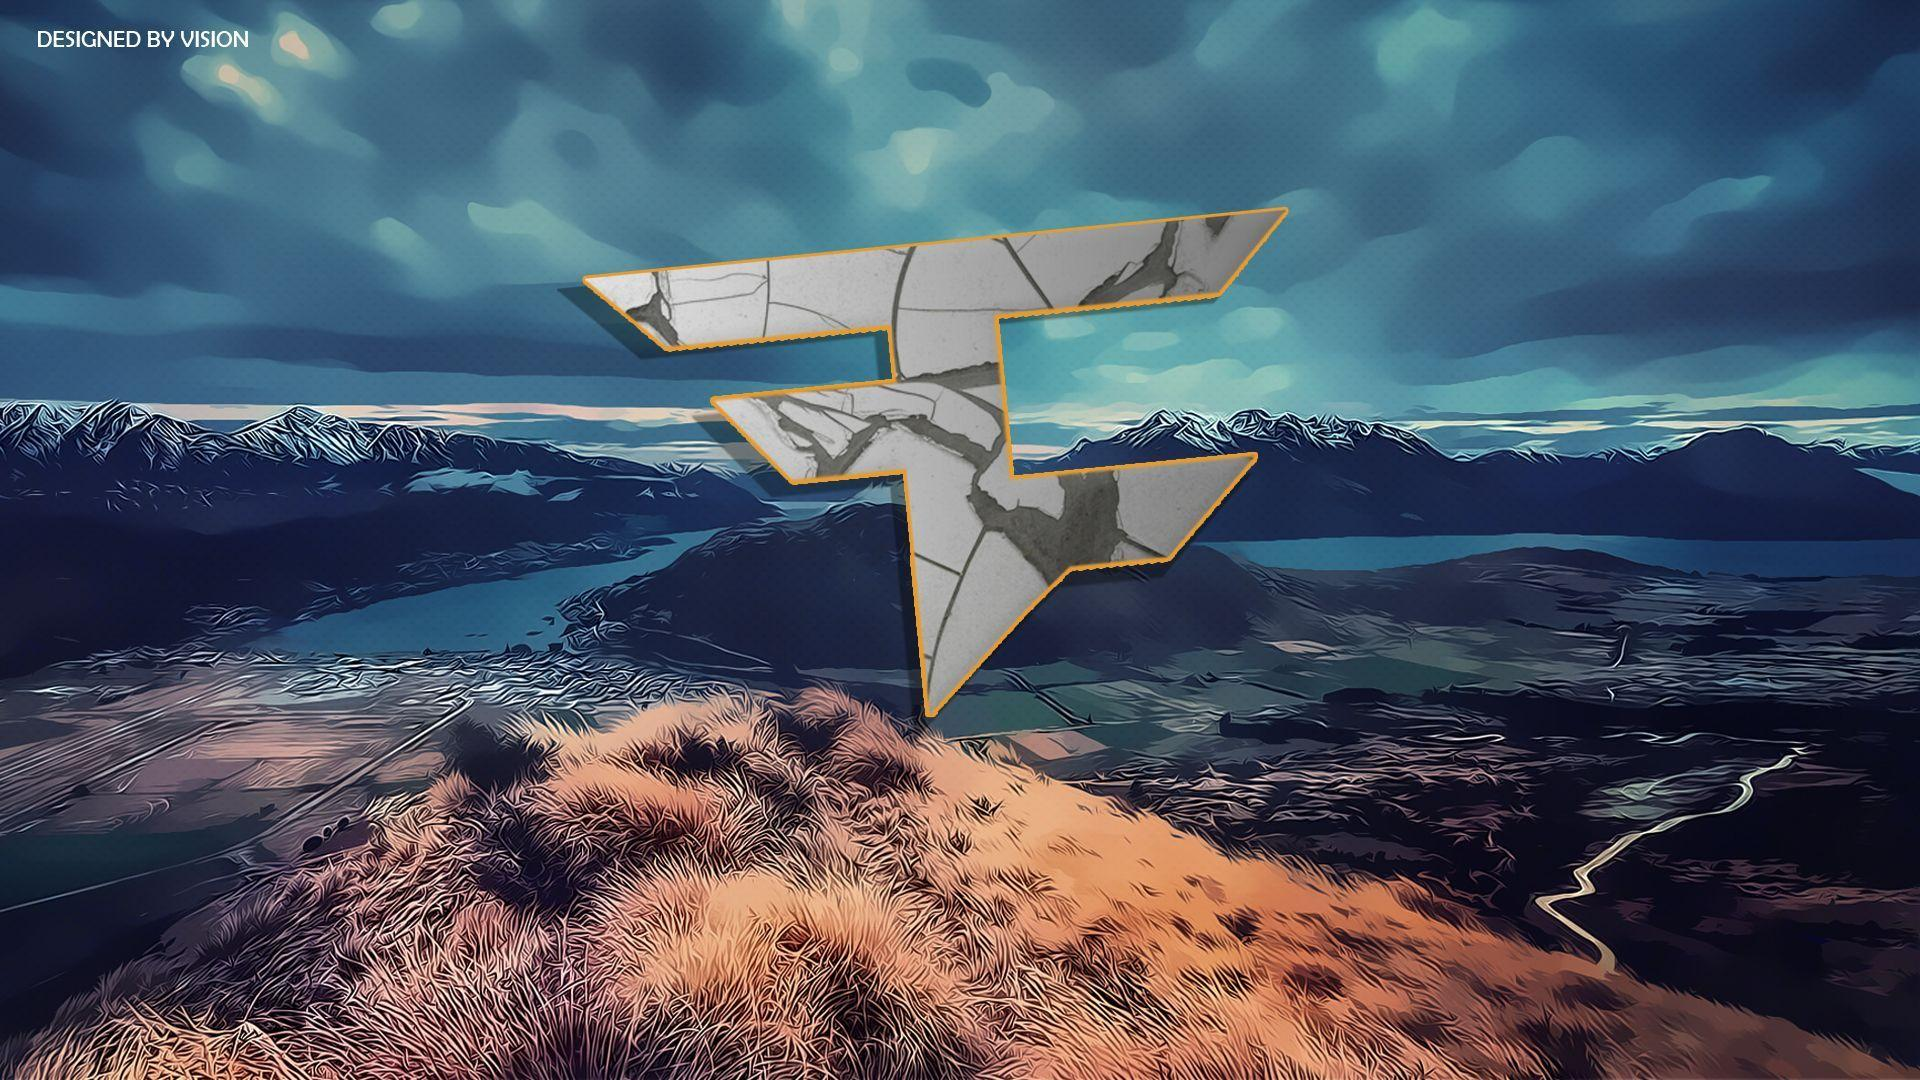 A FaZe wallpapers I done